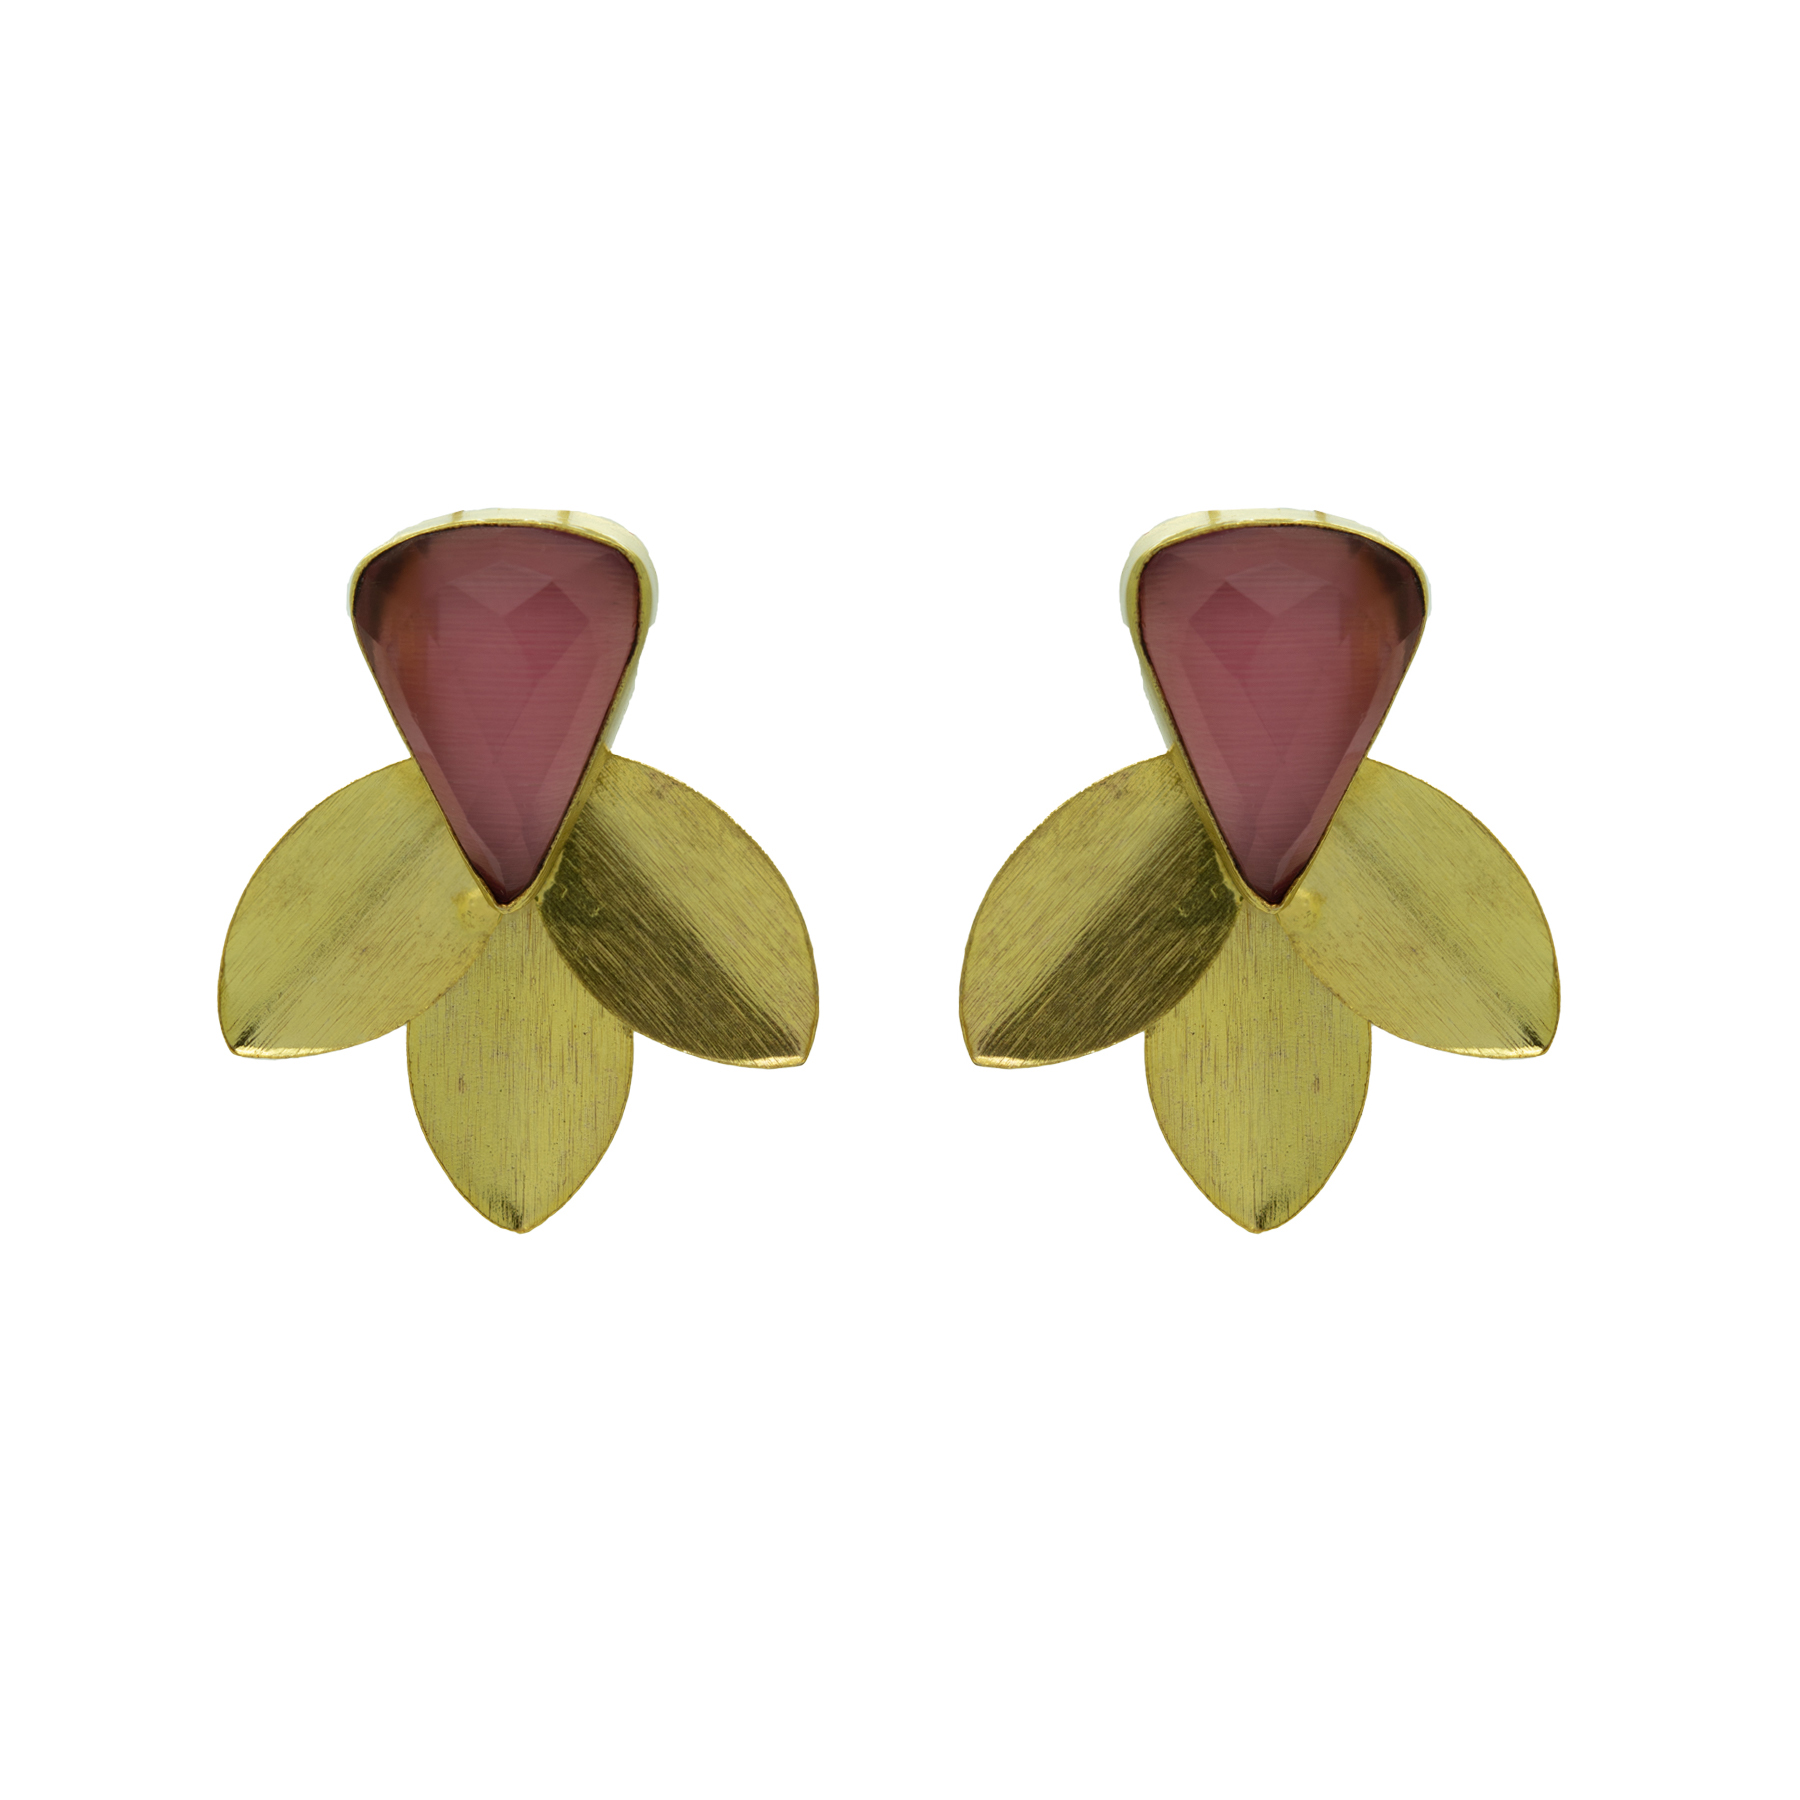 Handcrafted Gold Plated Shined Leaf Studs 2